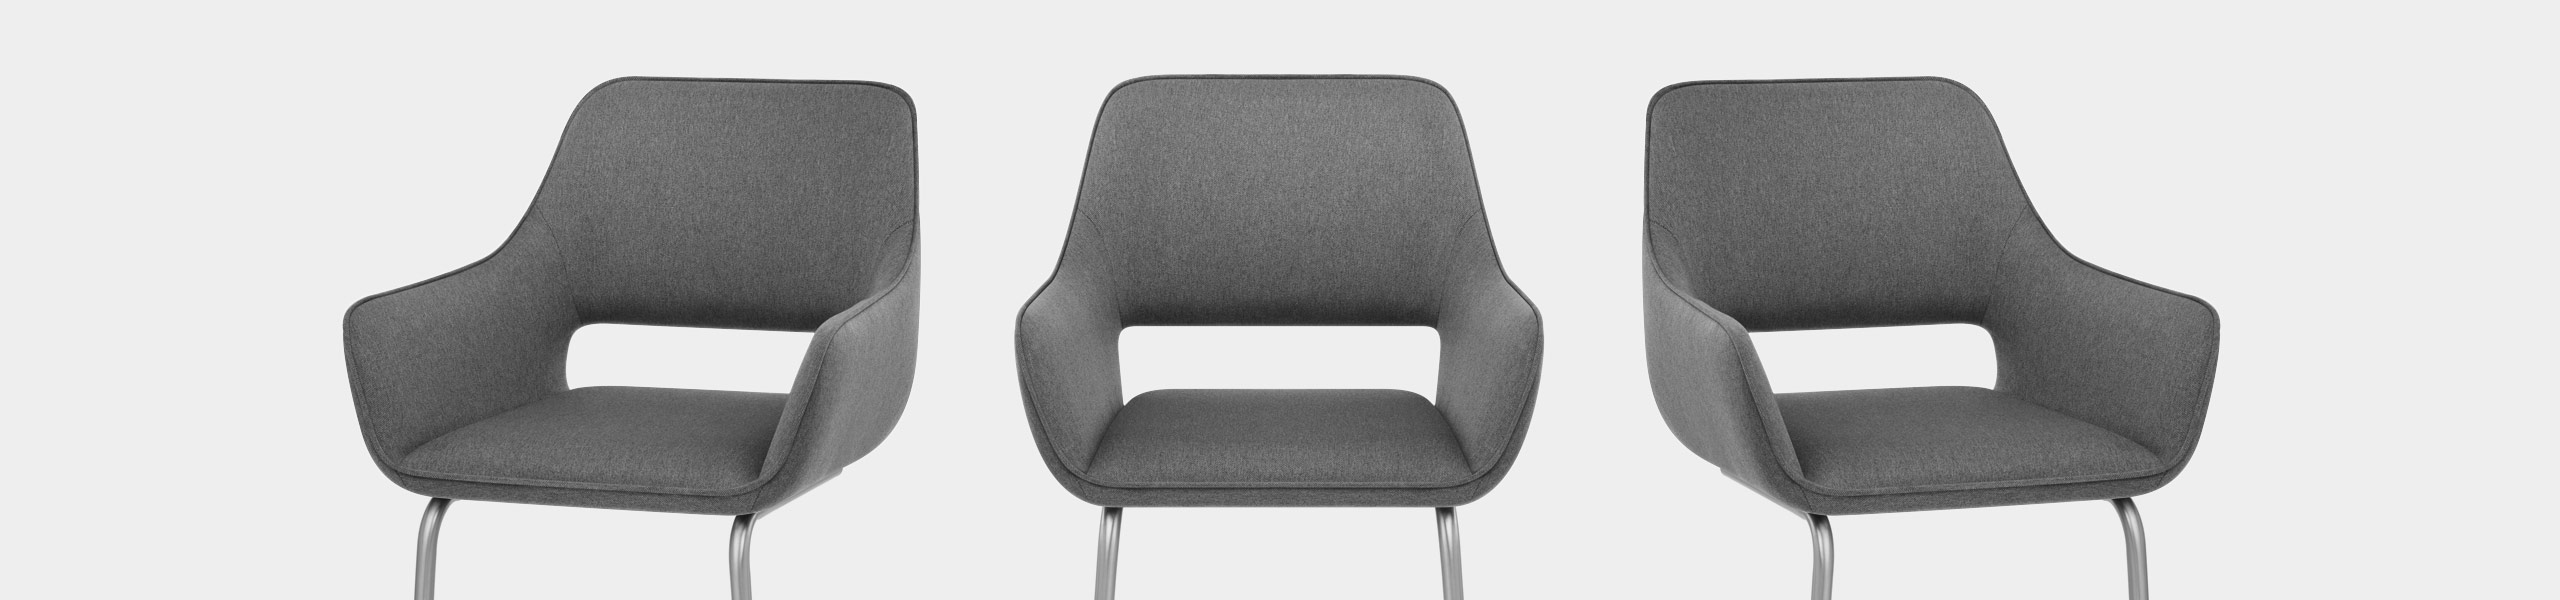 Remix Dining Chair Grey Fabric Video Banner